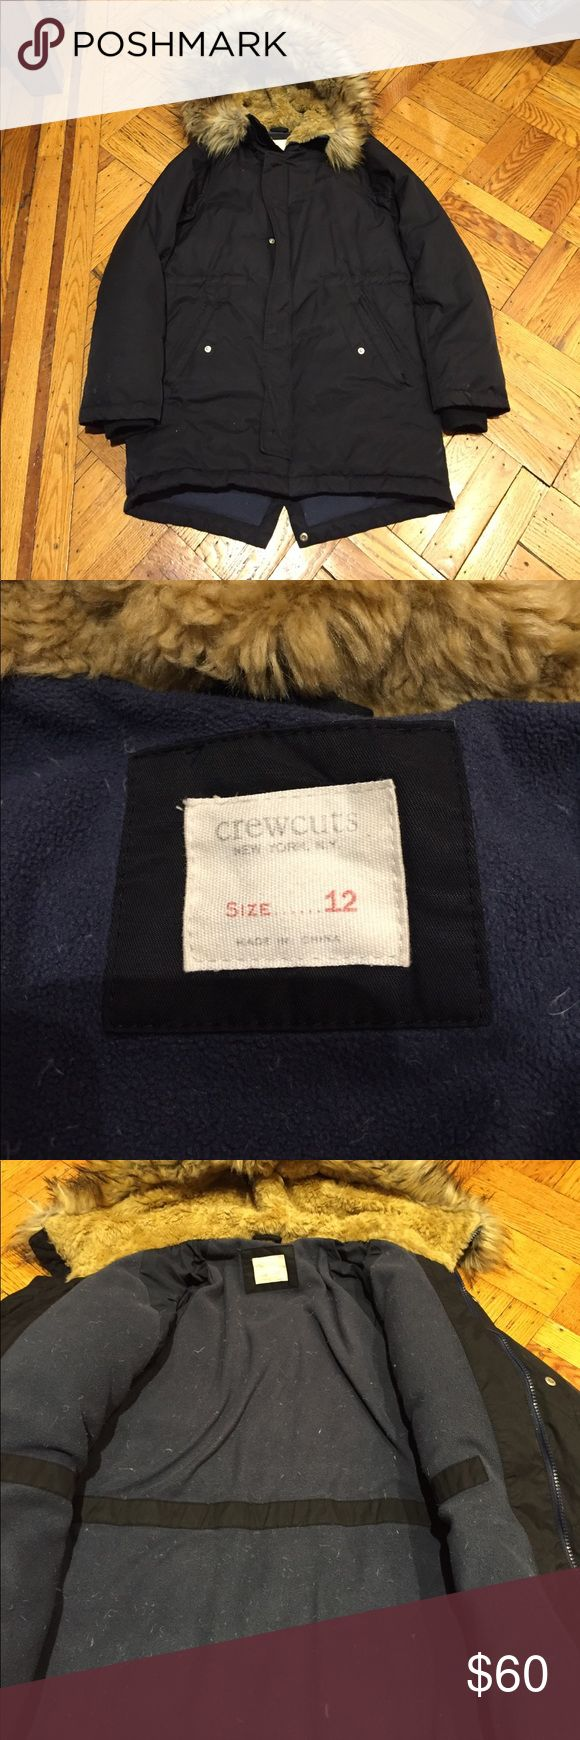 ☃️Crewcuts Winter Puffer Jackets w/ fur lined hood ☃️Crewcuts Winter Puffer Jackets w/ fur lined hood☃️ good condition some lint on inside - super warm size 12 boys in navy J. Crew Jackets & Coats Puffers